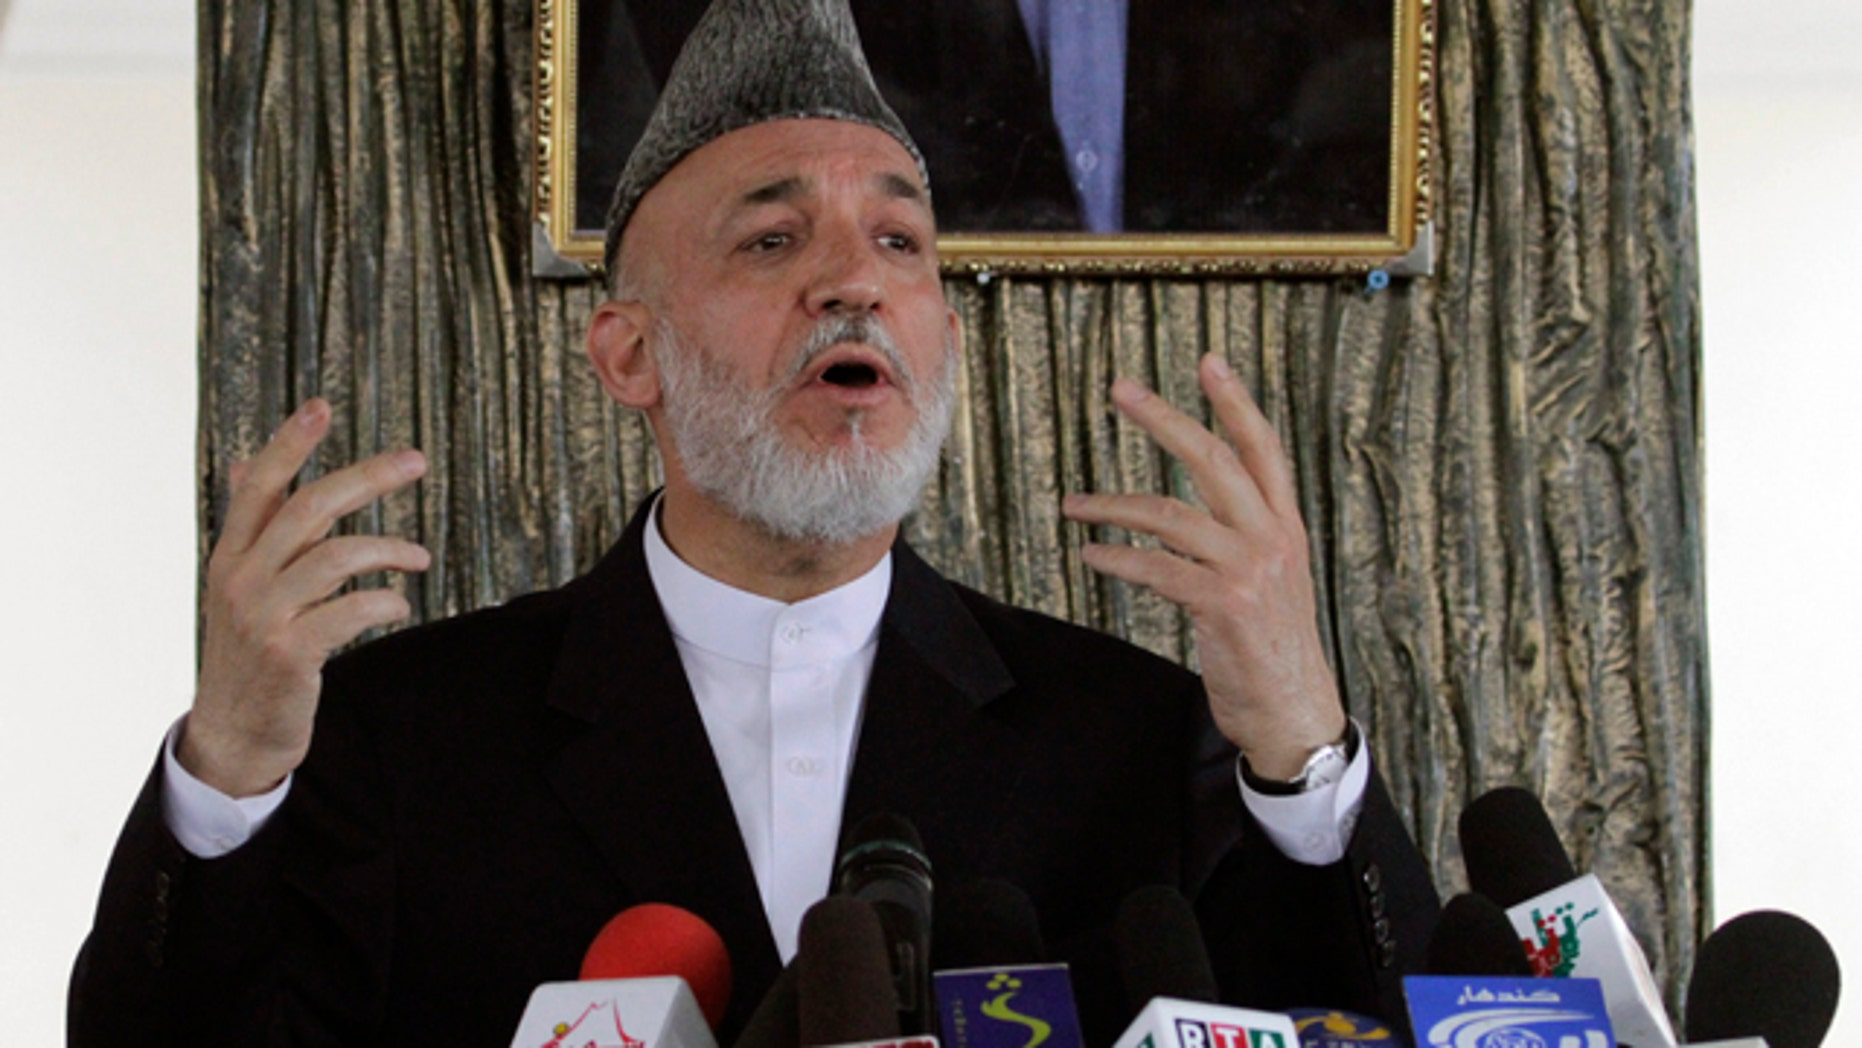 Oct. 11: Afghan President Hamid Karzai talks to Afghans in Argandab district of Kandahar province, south of Kabul, Afghanistan.